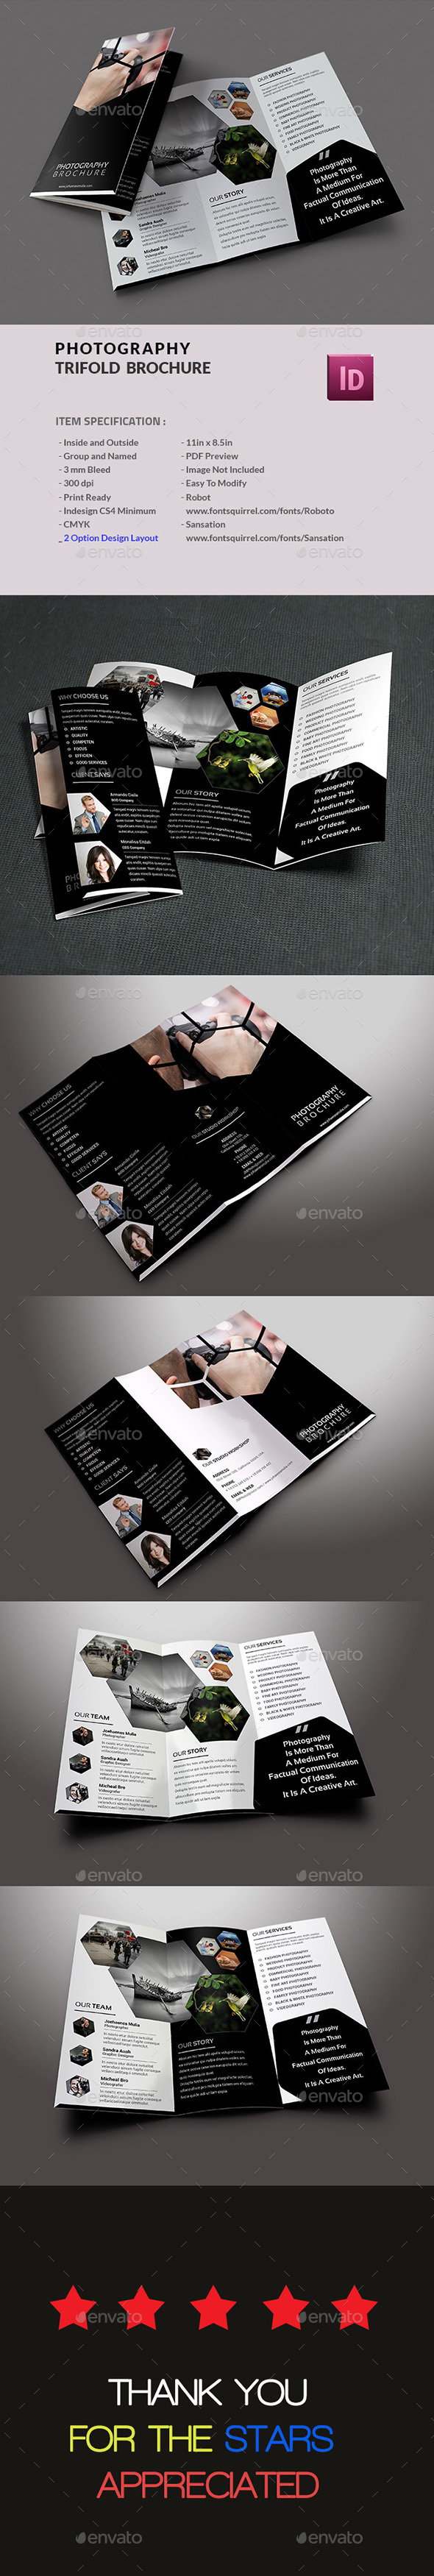 Photography Trifold Brochure - Informational Brochures